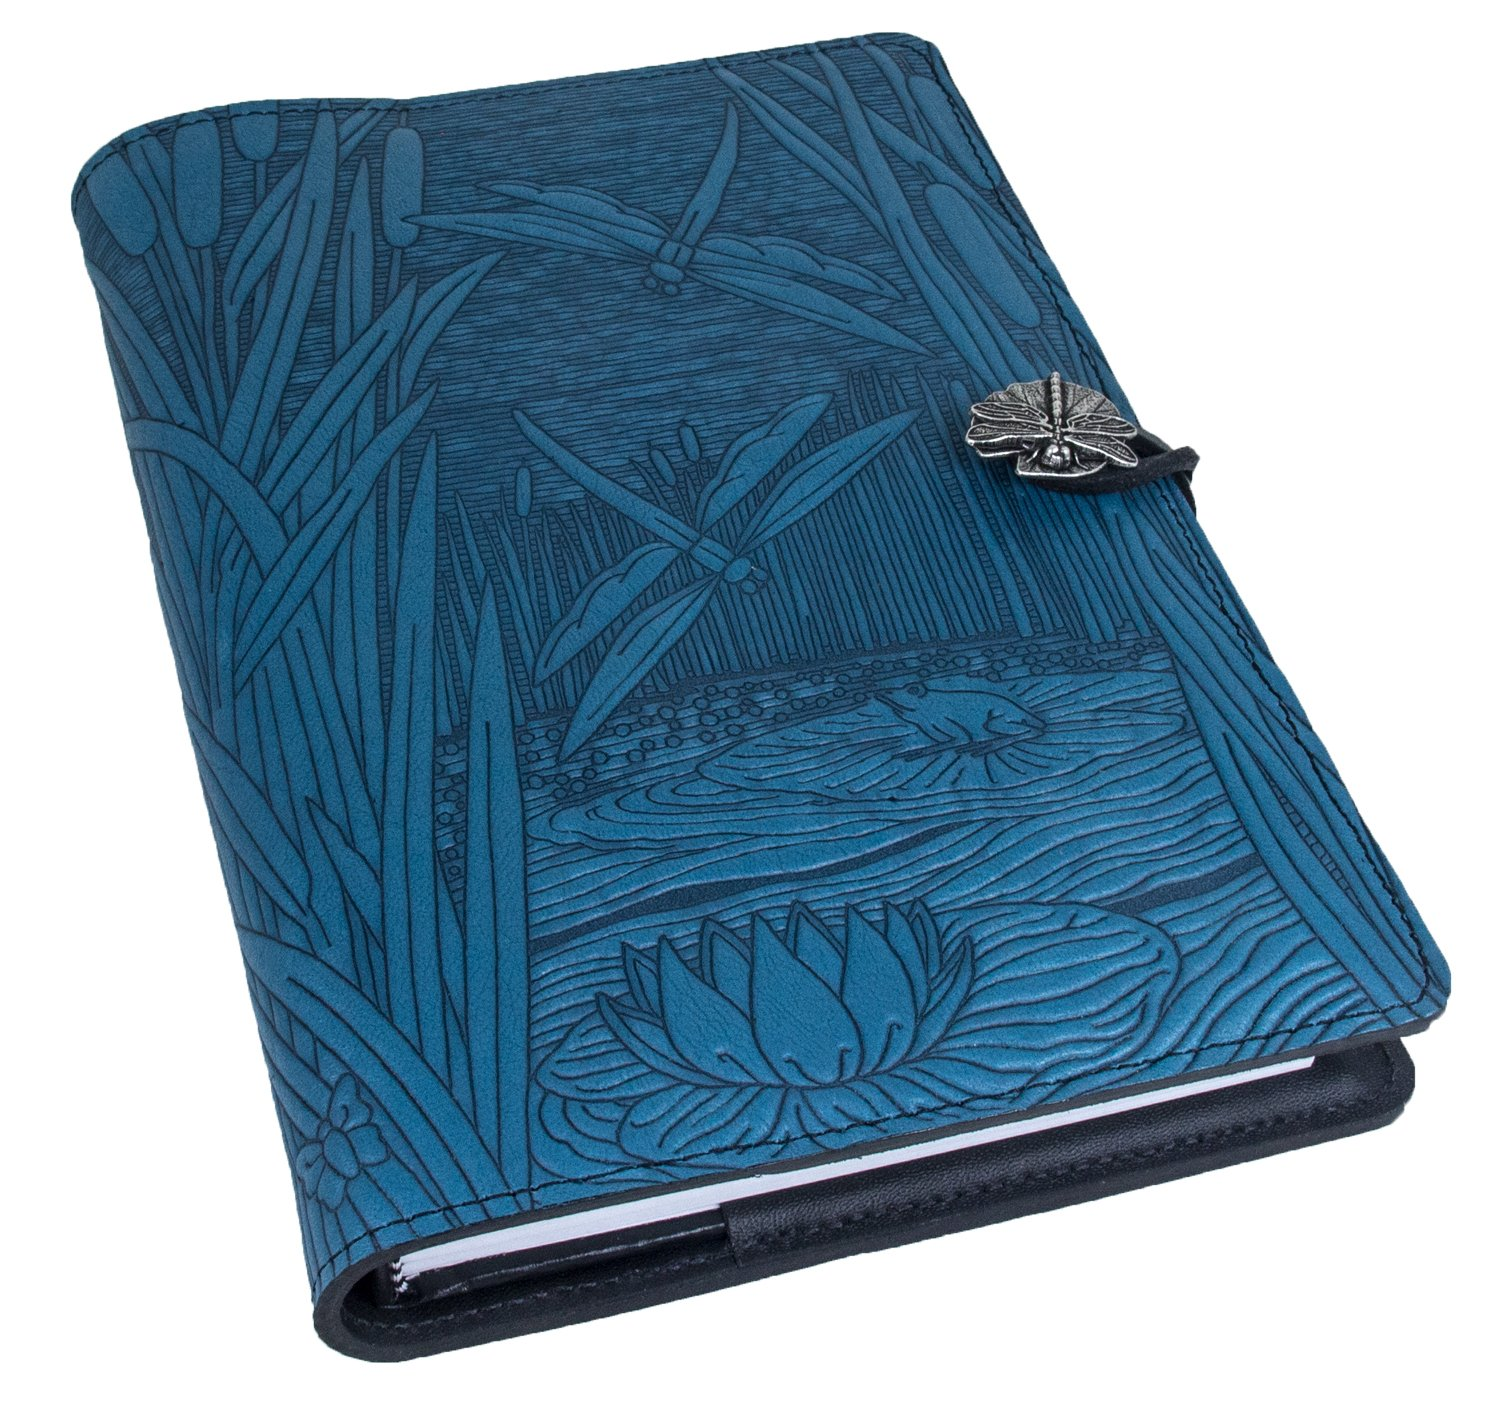 Genuine Leather Refillable Journal Cover + Hardbound Blank Insert - 6x9 Inches - Dragonfly Pond, Sky Blue With Pewter Button - Made in the USA by Oberon Design by Oberon Design (Image #1)